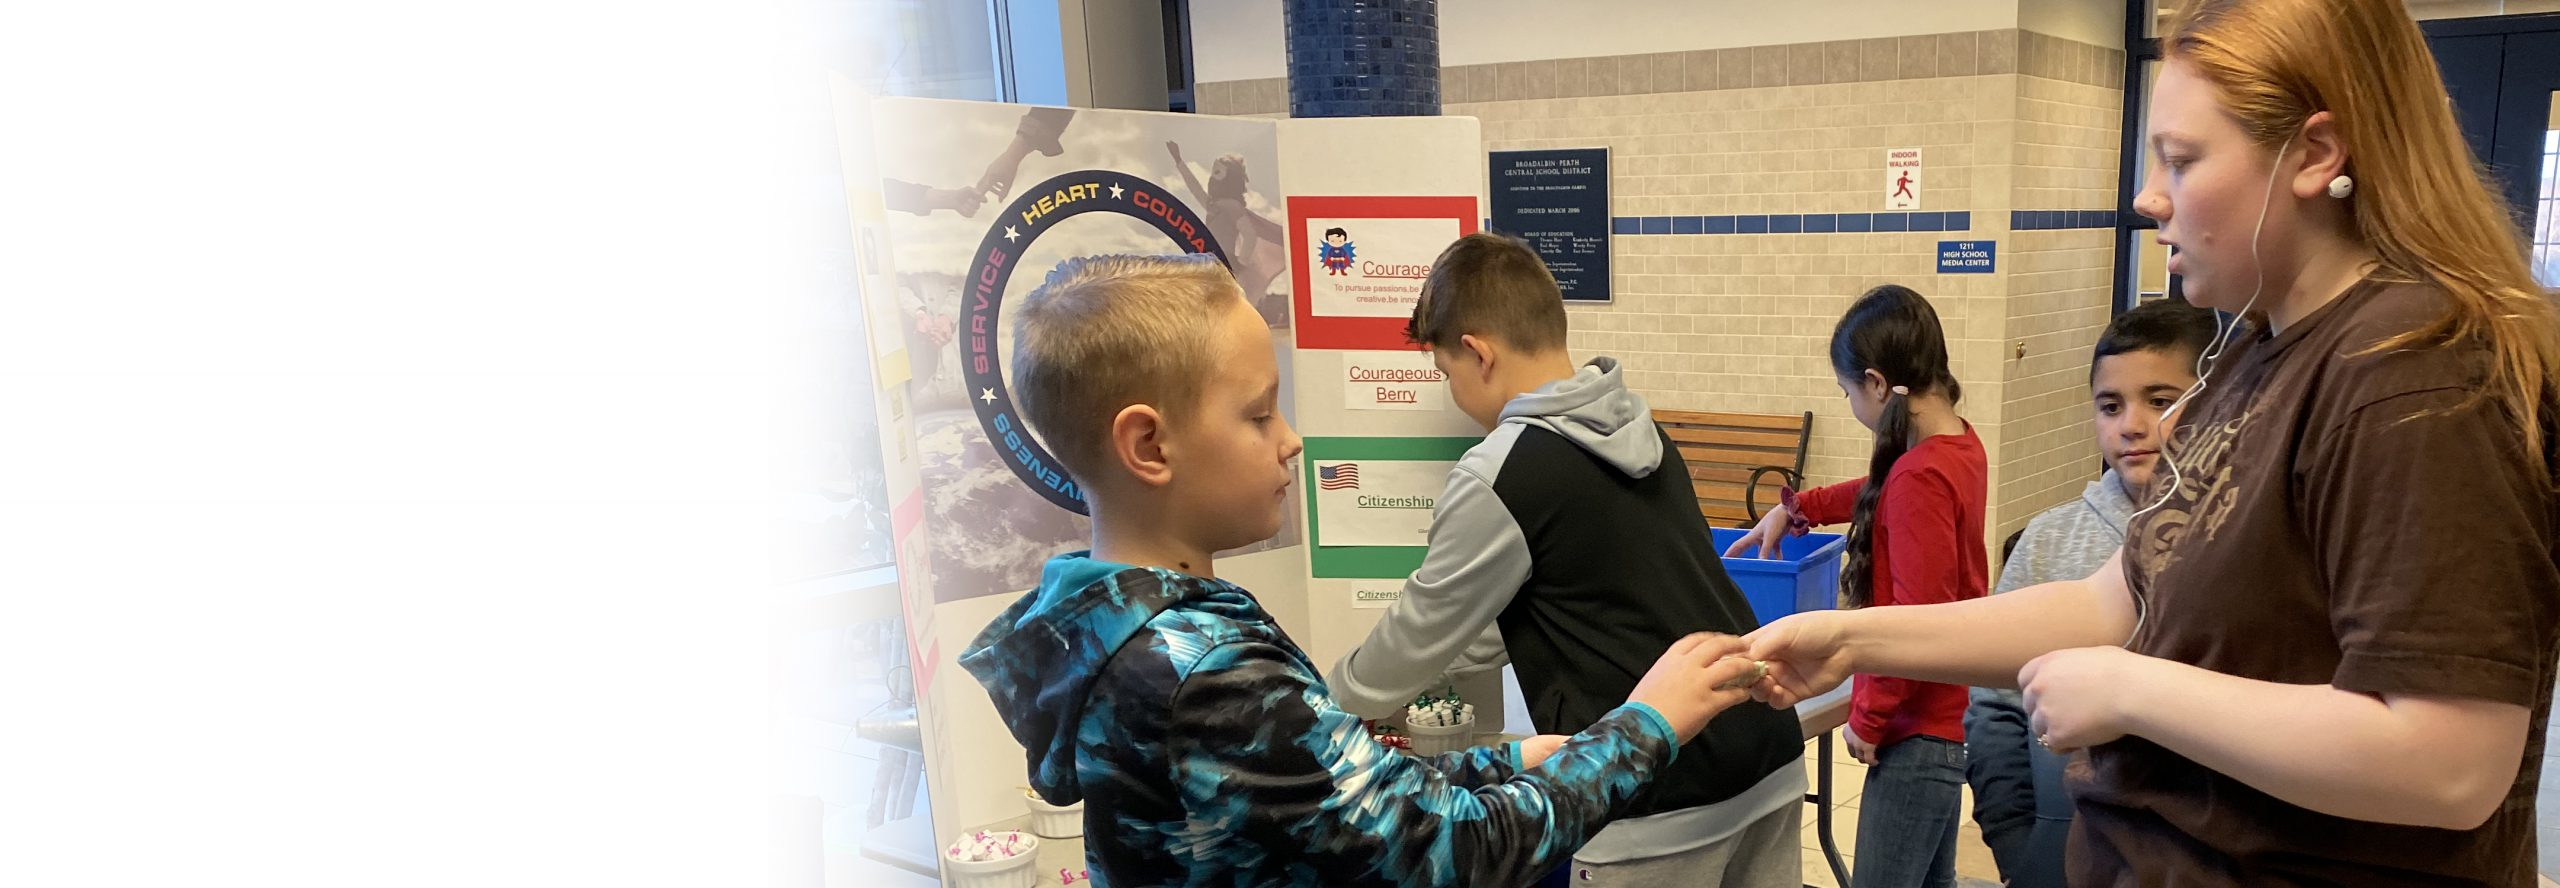 a younger and older student complete a transaction in a school lobby